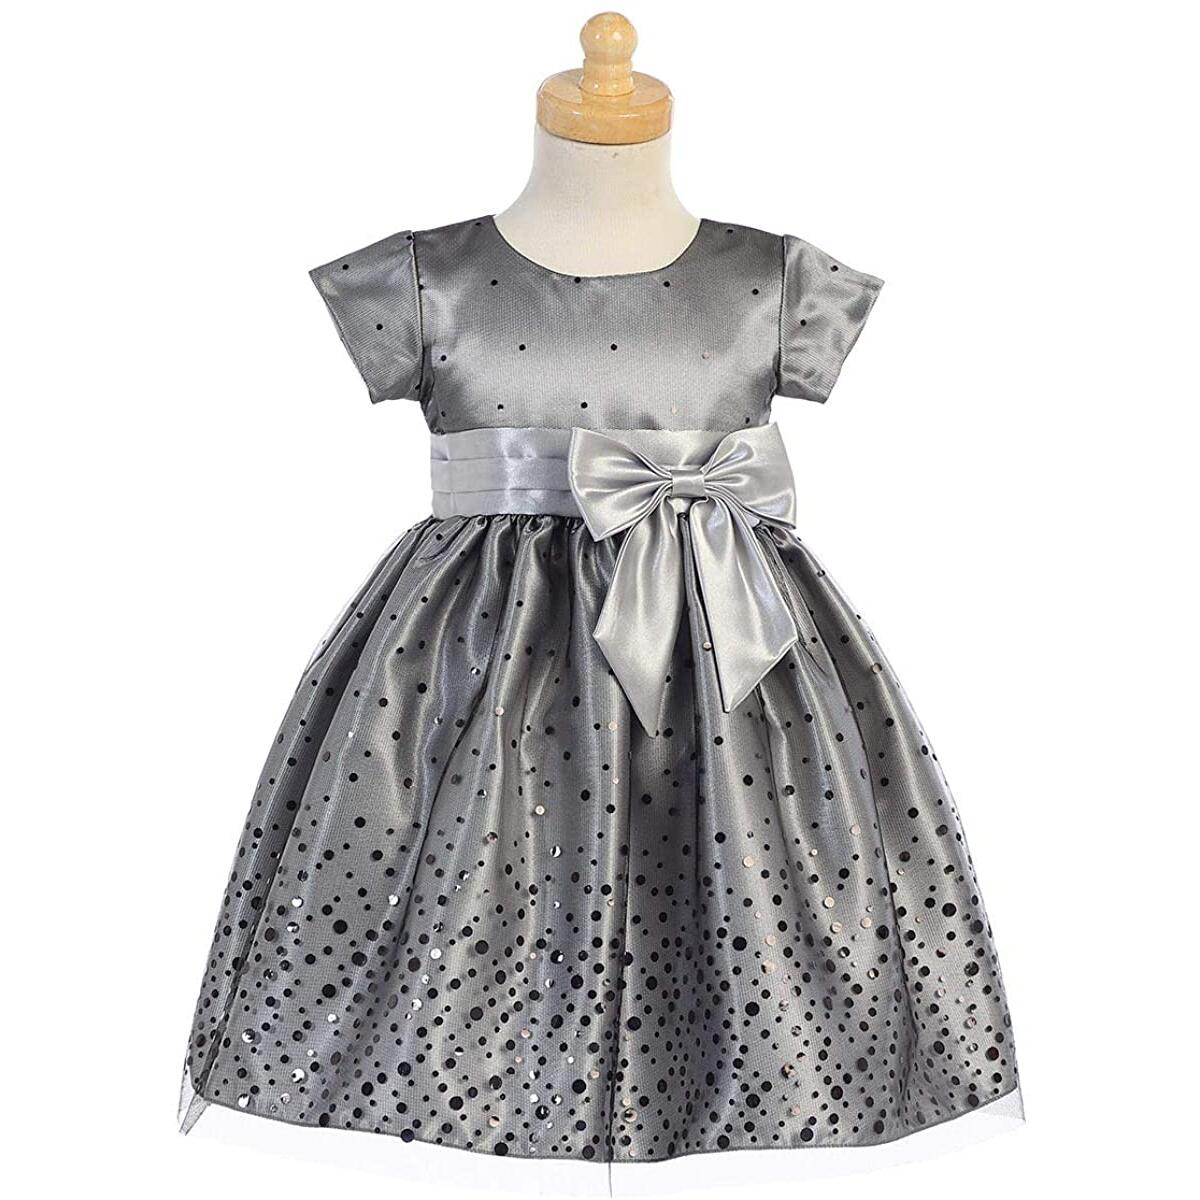 Pink Princess Christmas Dresses for Girls - Gold, Silver Baby Toddler Outfits - Made in USA